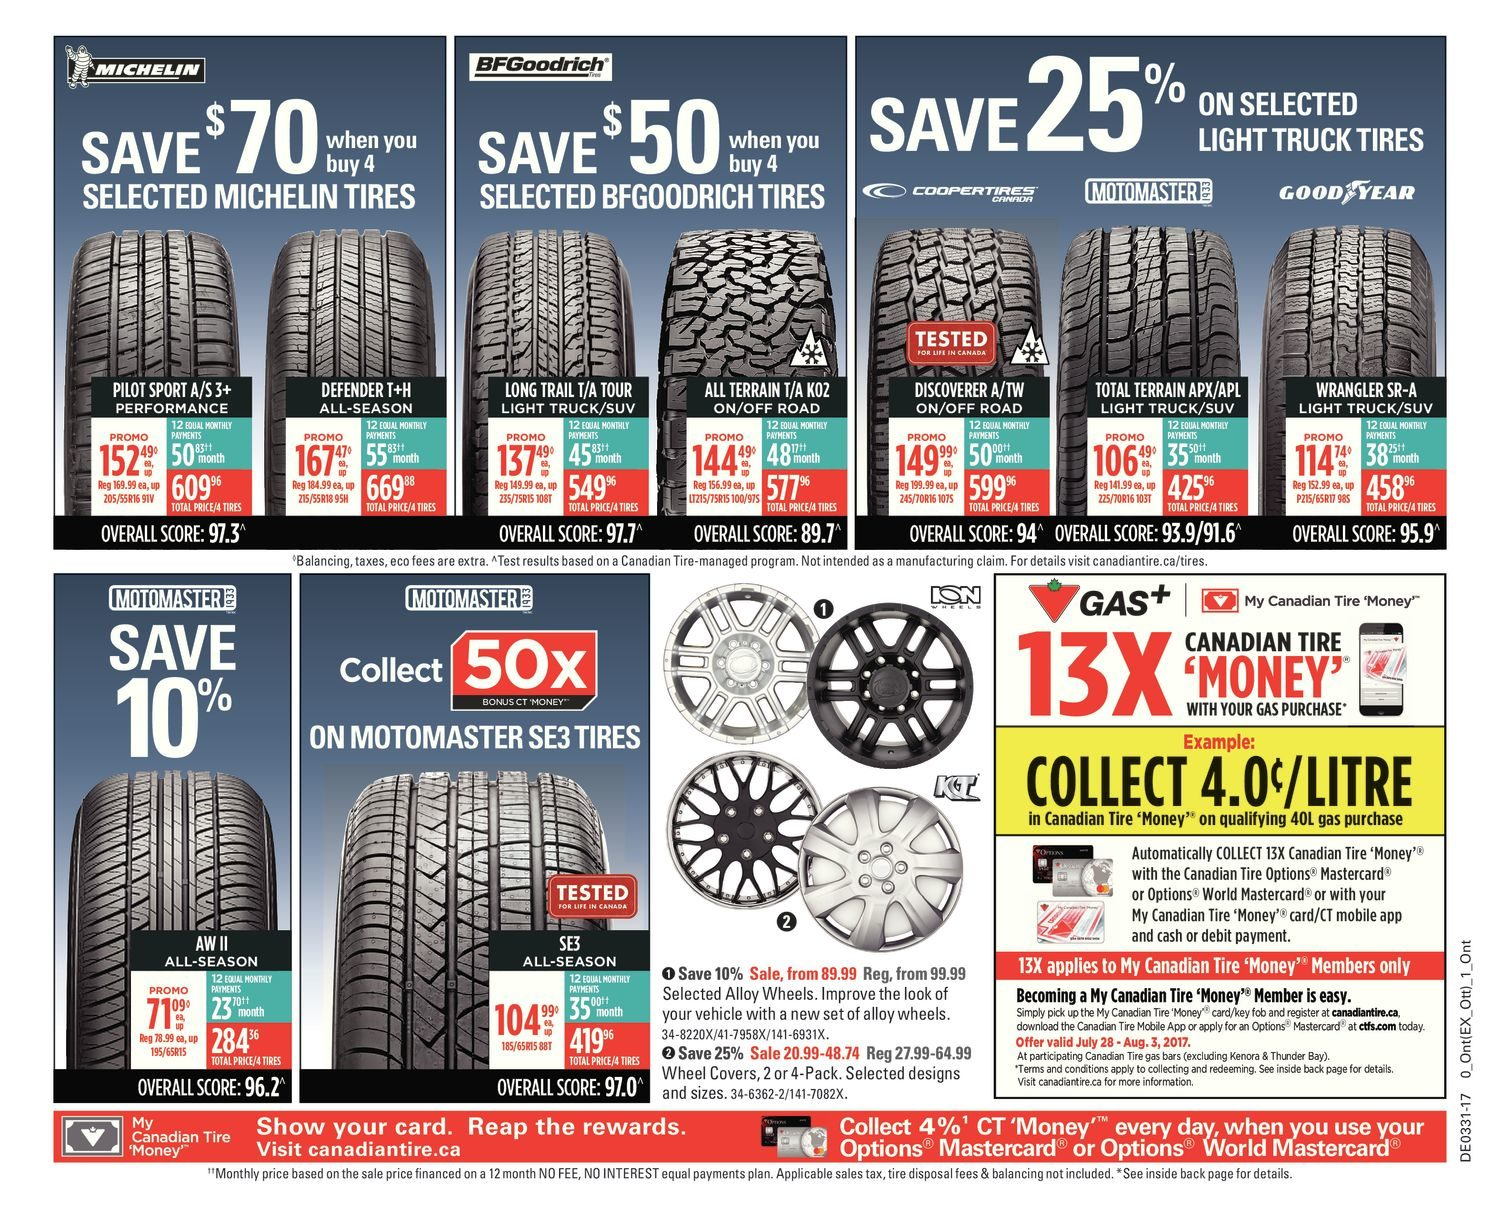 Canadian Tire Weekly Flyer - Weekly - Live For Summer - Jul 28 u2013 Aug 3 - RedFlagDeals.com  sc 1 st  RedFlagDeals.com & Canadian Tire Weekly Flyer - Weekly - Live For Summer - Jul 28 ...